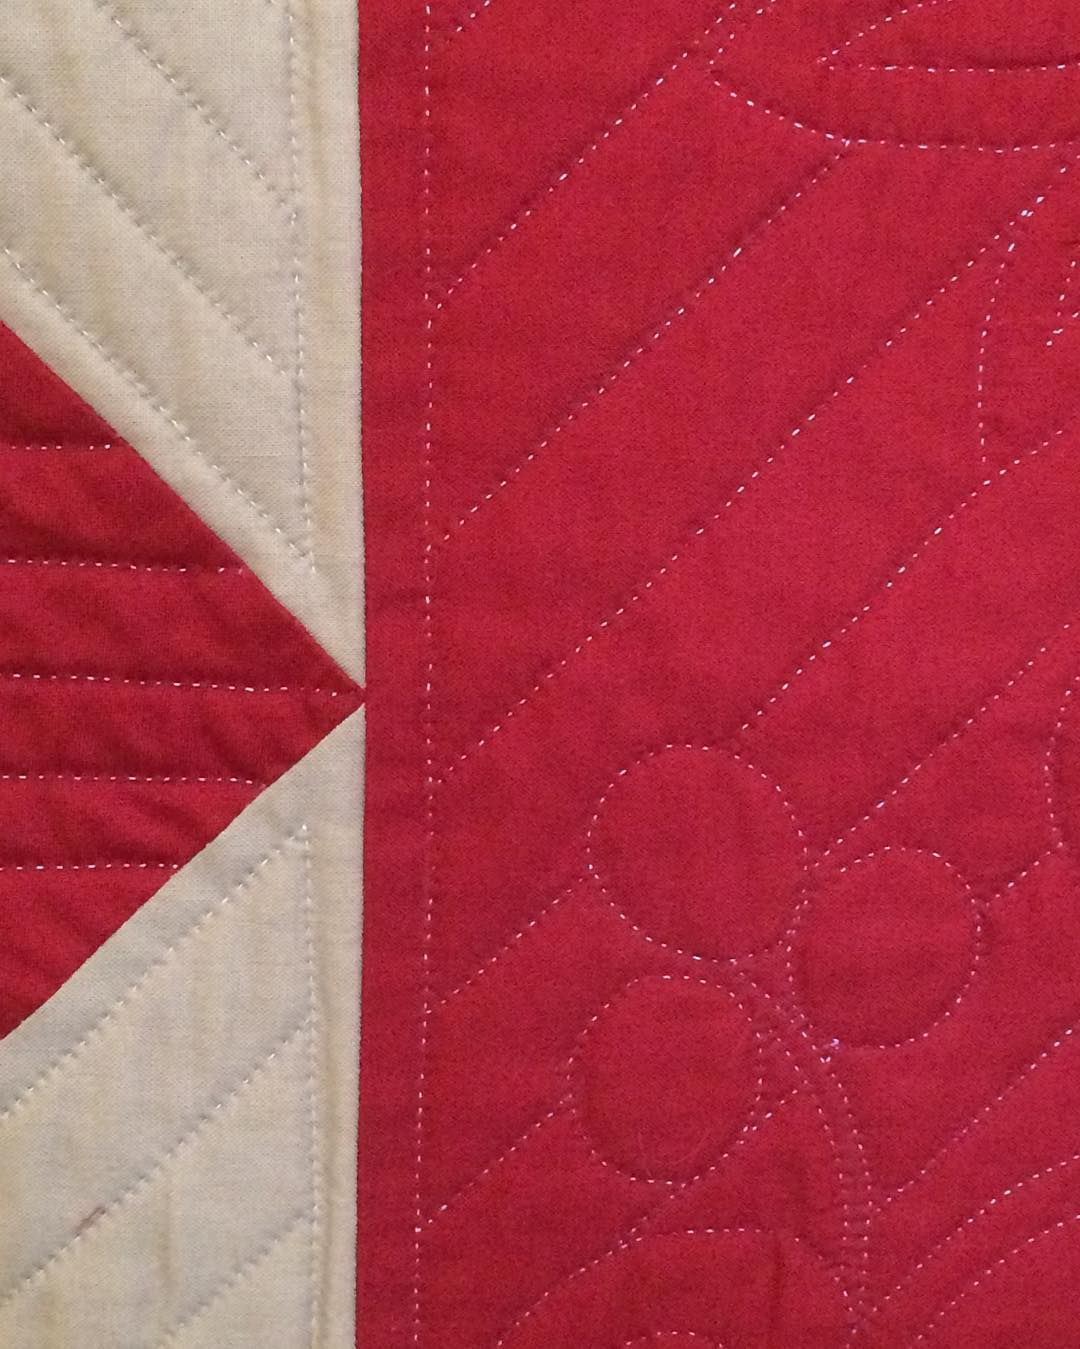 Cut-Out Corners with Square Within a Square Border (detail ... : hand quilting stitches per inch - Adamdwight.com